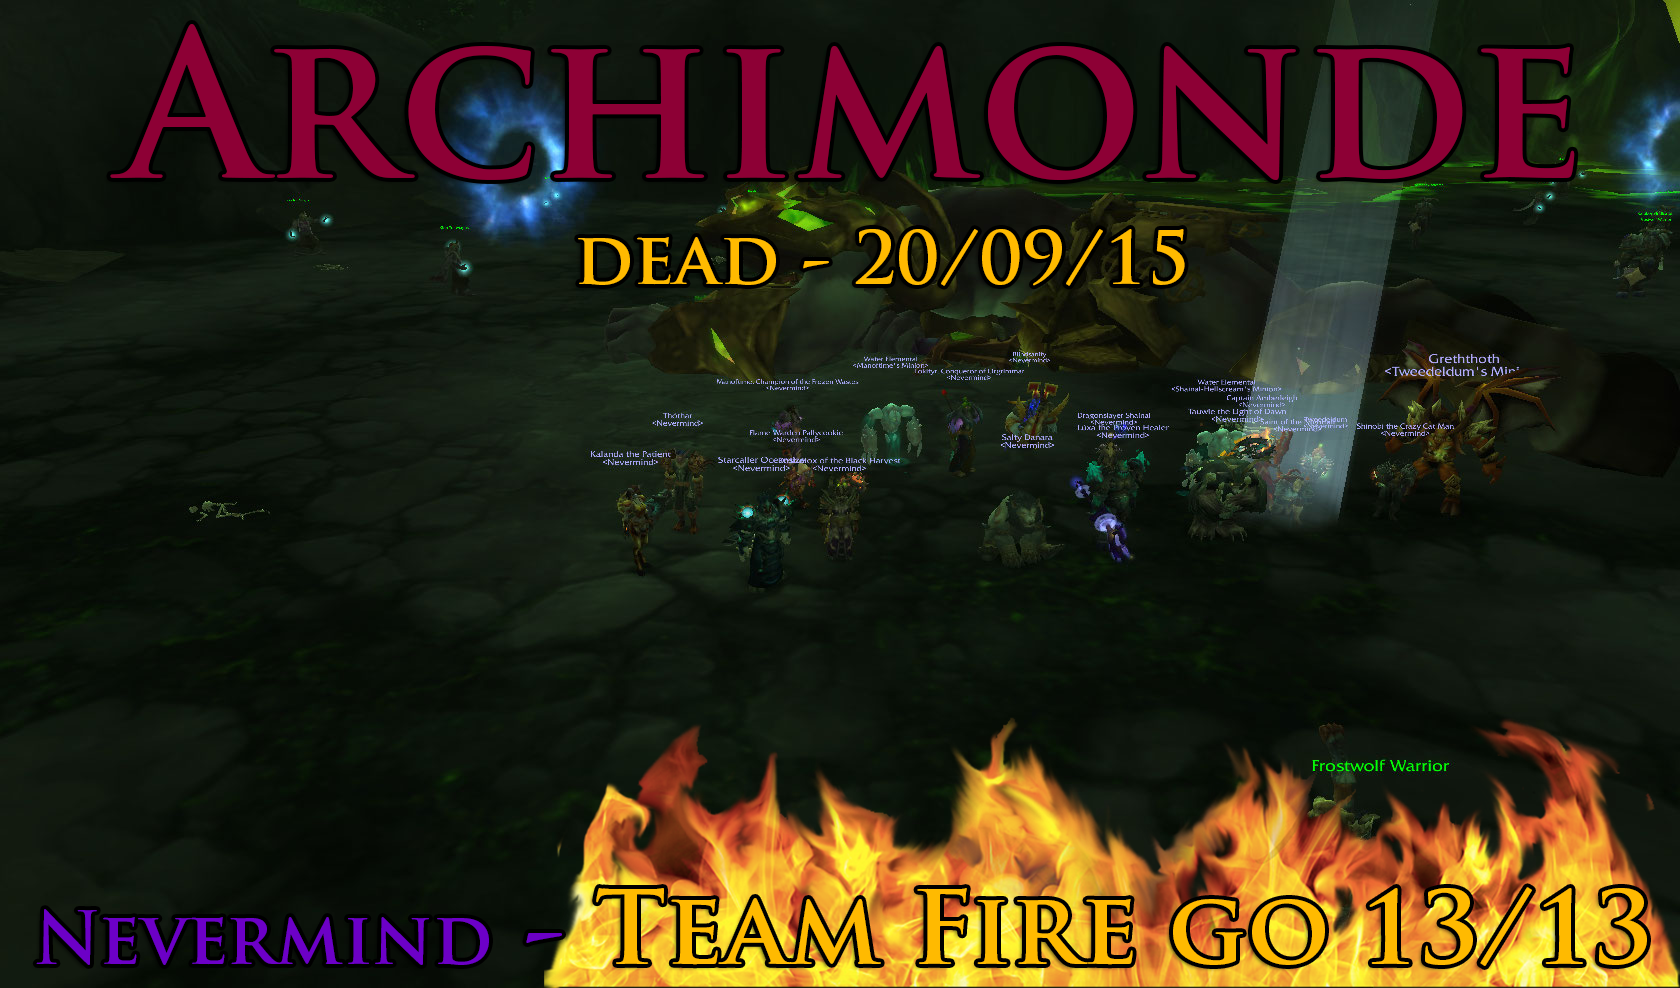 ARCHIMONDE IS DEAD! - Team Fire and Nevermind go 13/13 HFC